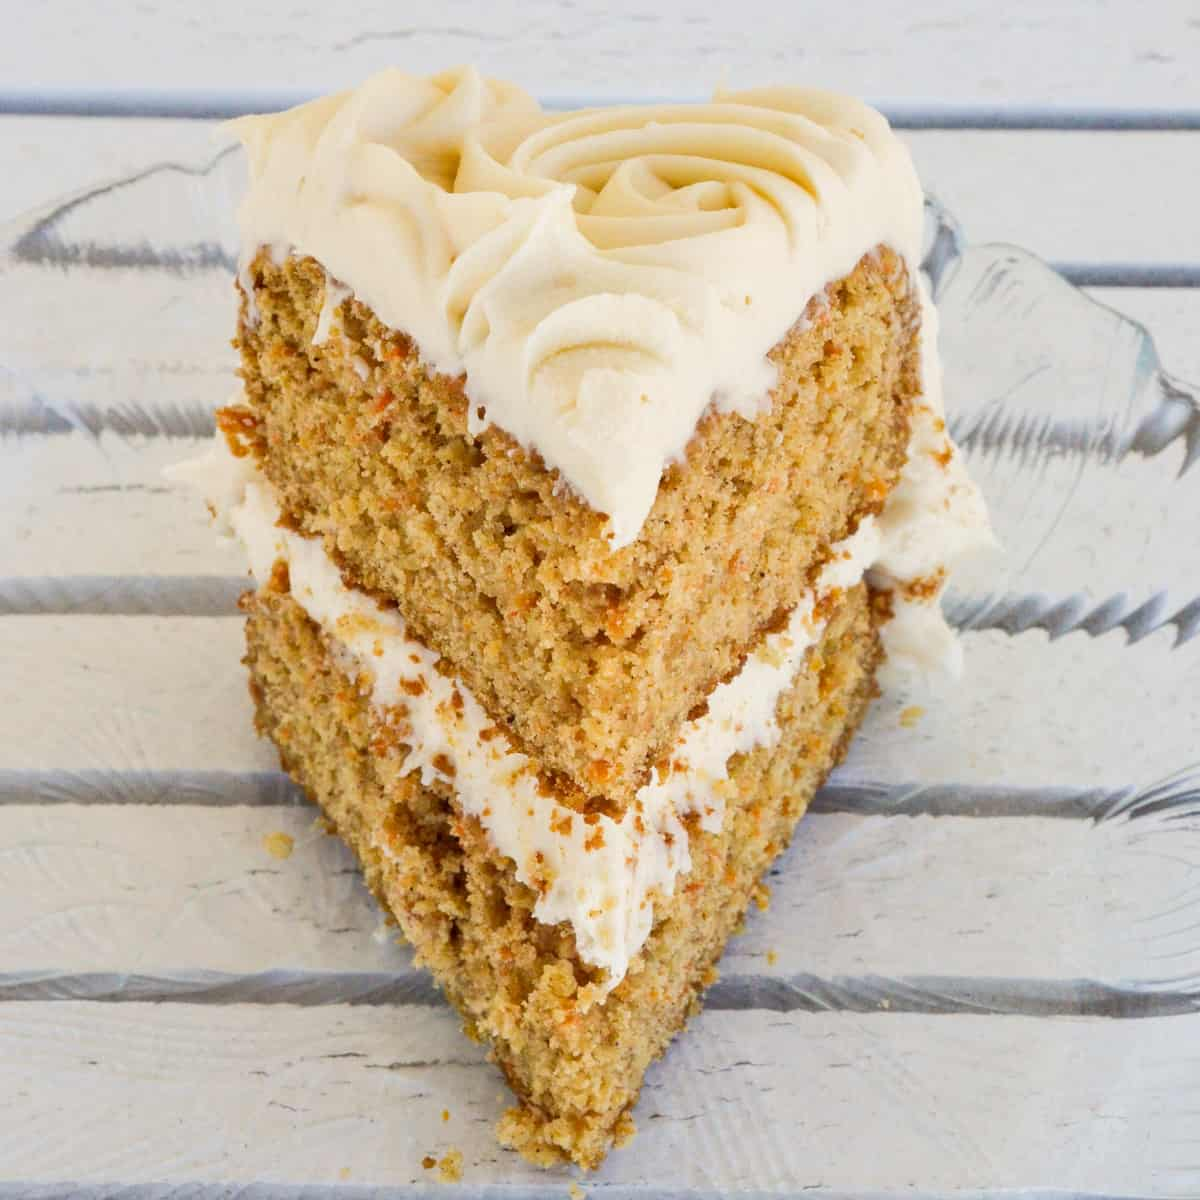 Front view of one slice of Gluten-Free Carrot Cake.